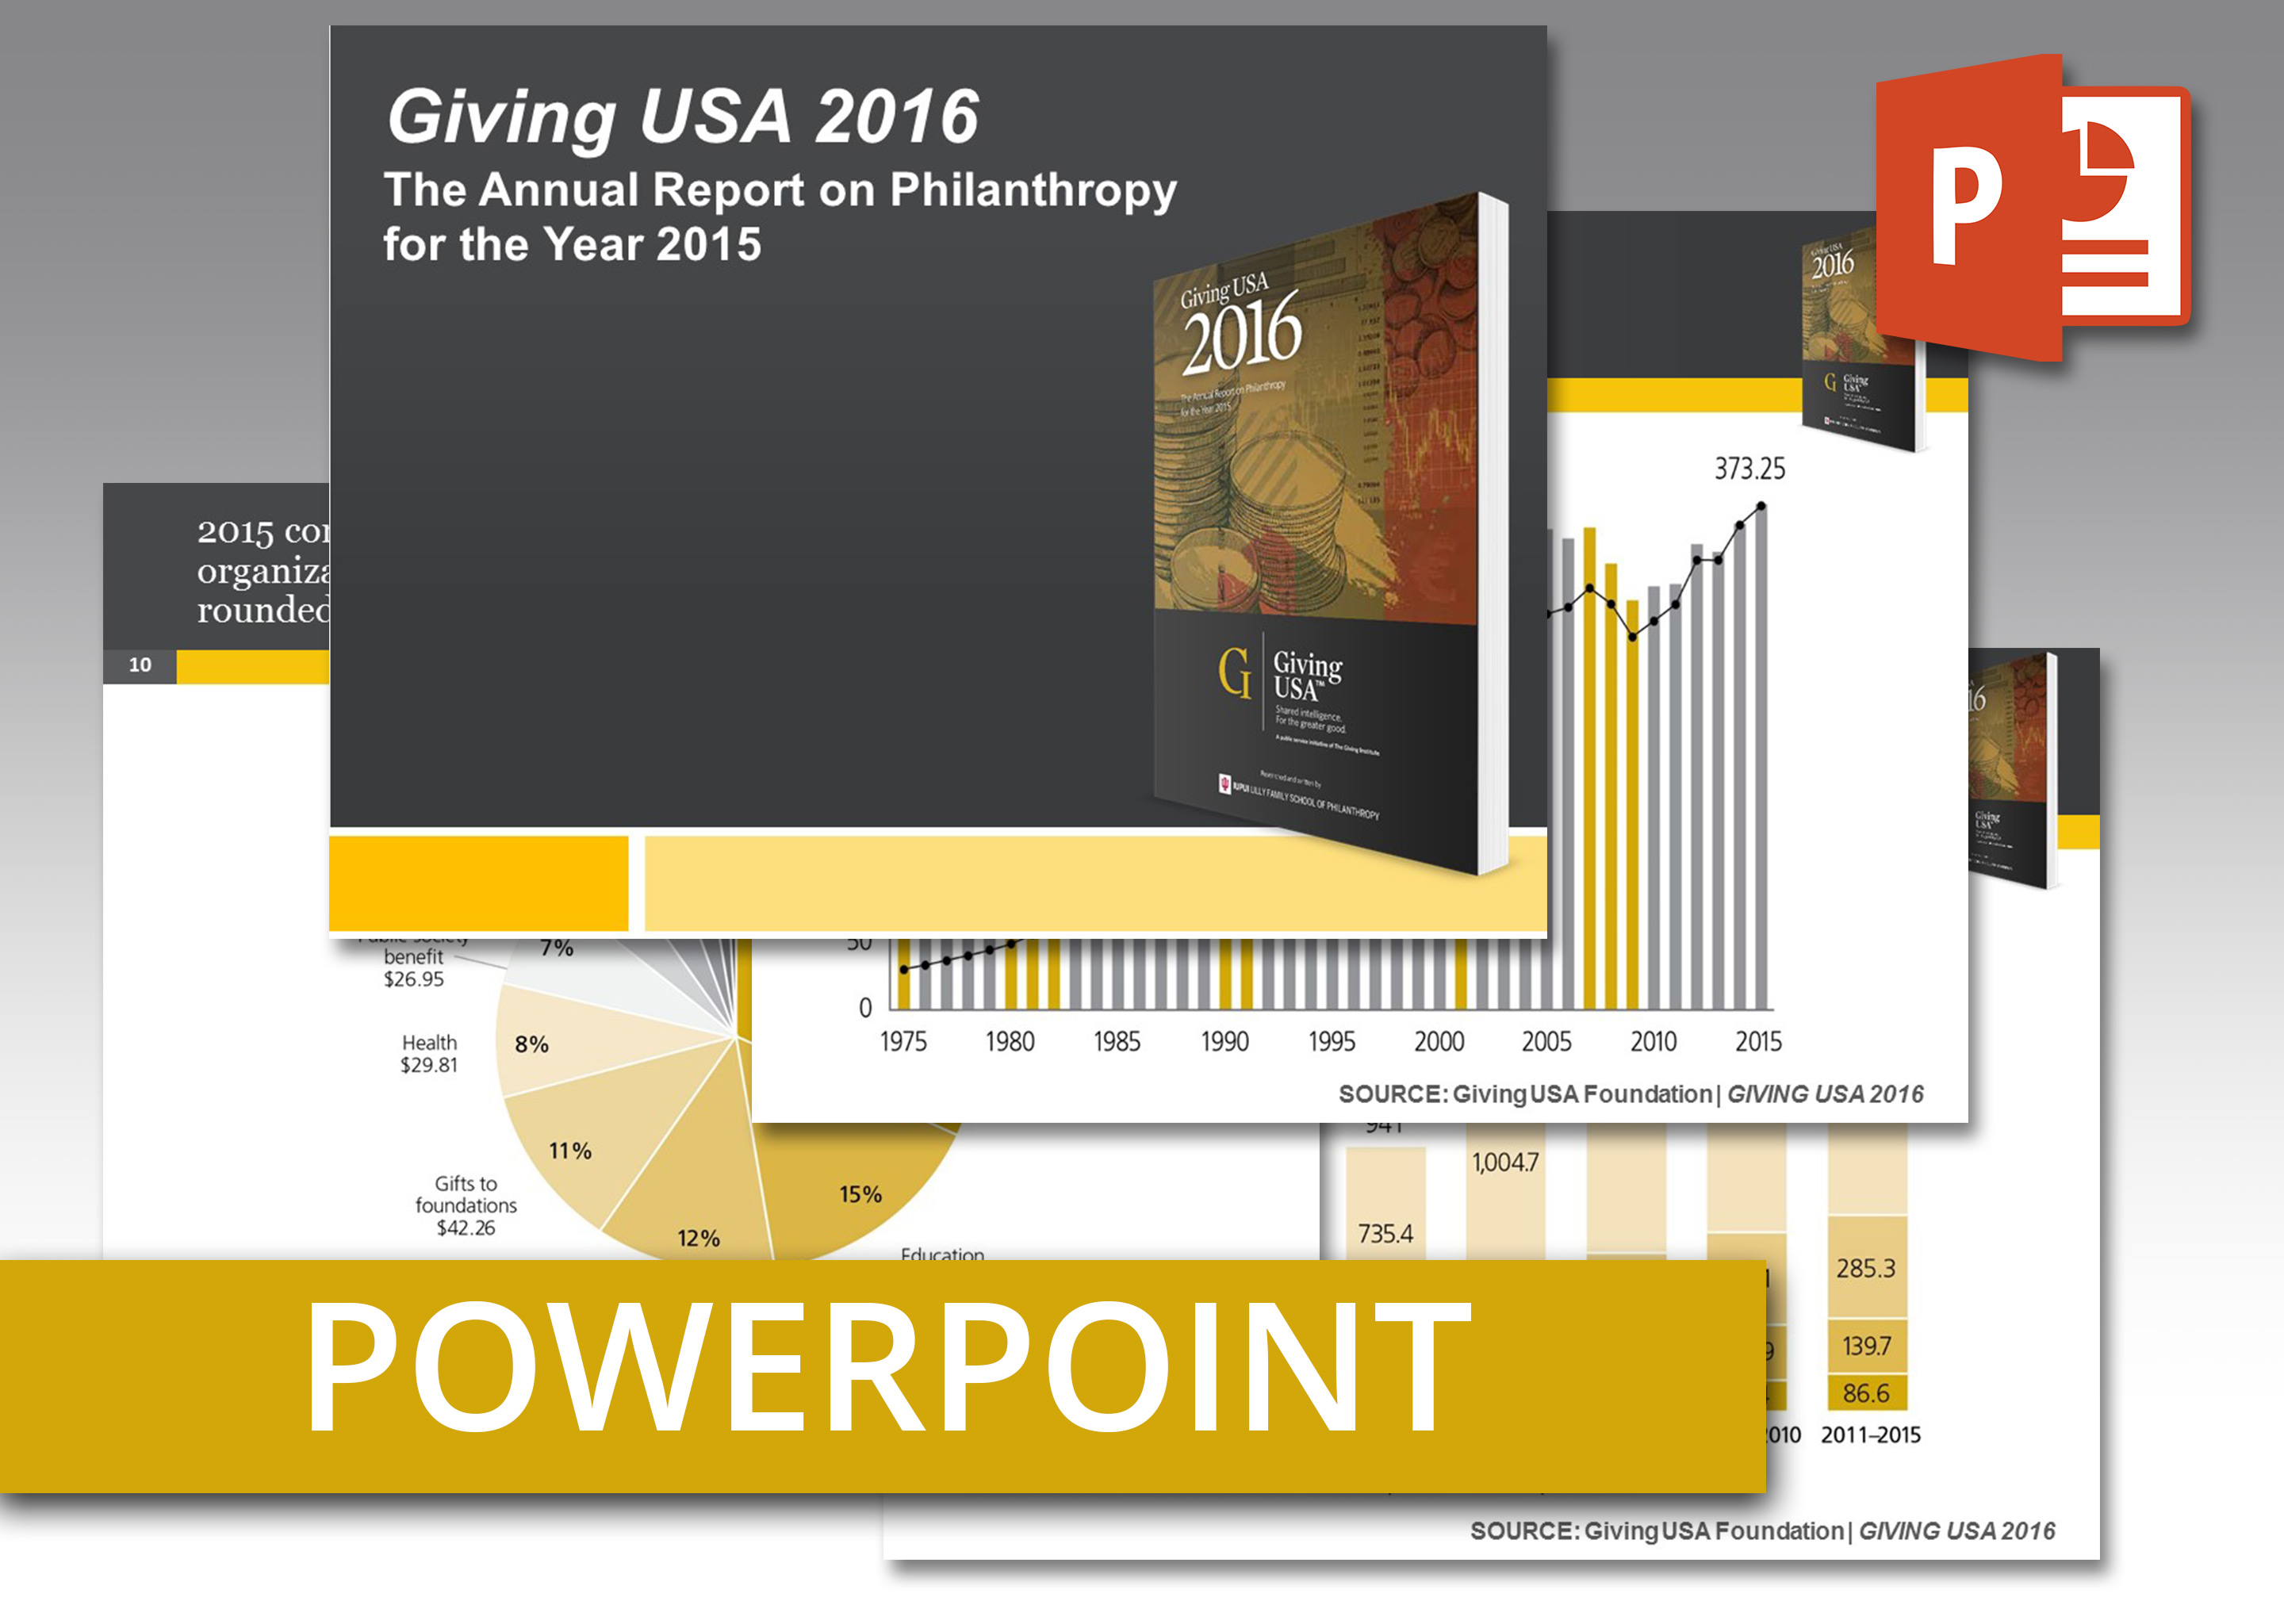 Coolmathgamesus  Unique Giving Usa  Powerpoint An Easytouse Presentation Of Report  With Fetching Giving Usa  Powerpoint An Easytouse Presentation Of Report Findings Including Talking Points With Astonishing Screen Capture Powerpoint Also Send Powerpoint To Word In Addition Award Winning Powerpoint Templates And Starbucks Powerpoint Background As Well As Media Clips For Powerpoint Additionally Anatomy Powerpoints From Givingusaorg With Coolmathgamesus  Fetching Giving Usa  Powerpoint An Easytouse Presentation Of Report  With Astonishing Giving Usa  Powerpoint An Easytouse Presentation Of Report Findings Including Talking Points And Unique Screen Capture Powerpoint Also Send Powerpoint To Word In Addition Award Winning Powerpoint Templates From Givingusaorg